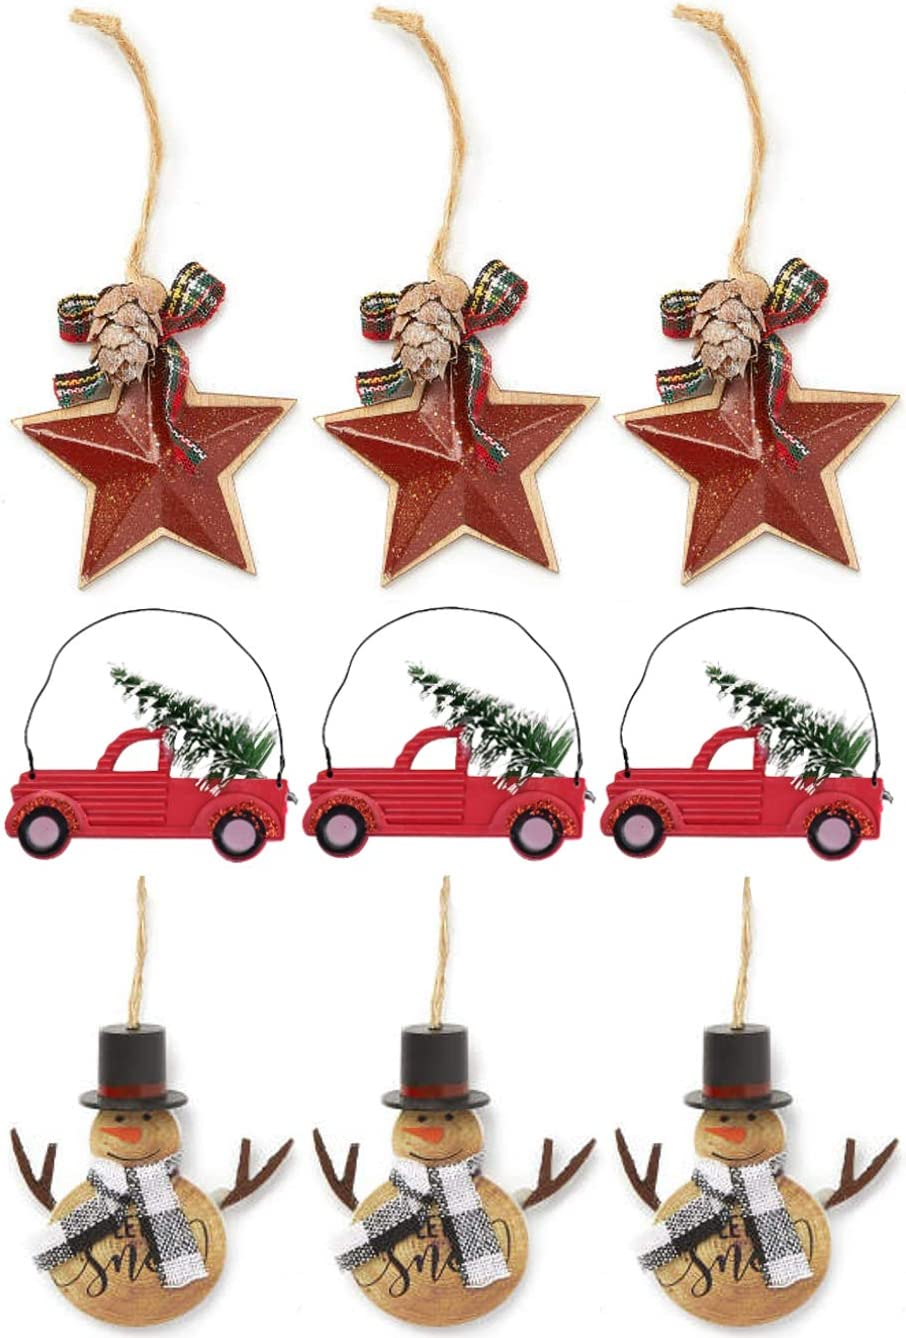 Charmed By Dragons Classic Rustic Farmhouse Decor Holiday Tree Ornaments Metal Stars Old Red Trucks and Snowmen 9 Piece Set in Gift Box (Rustic Set)